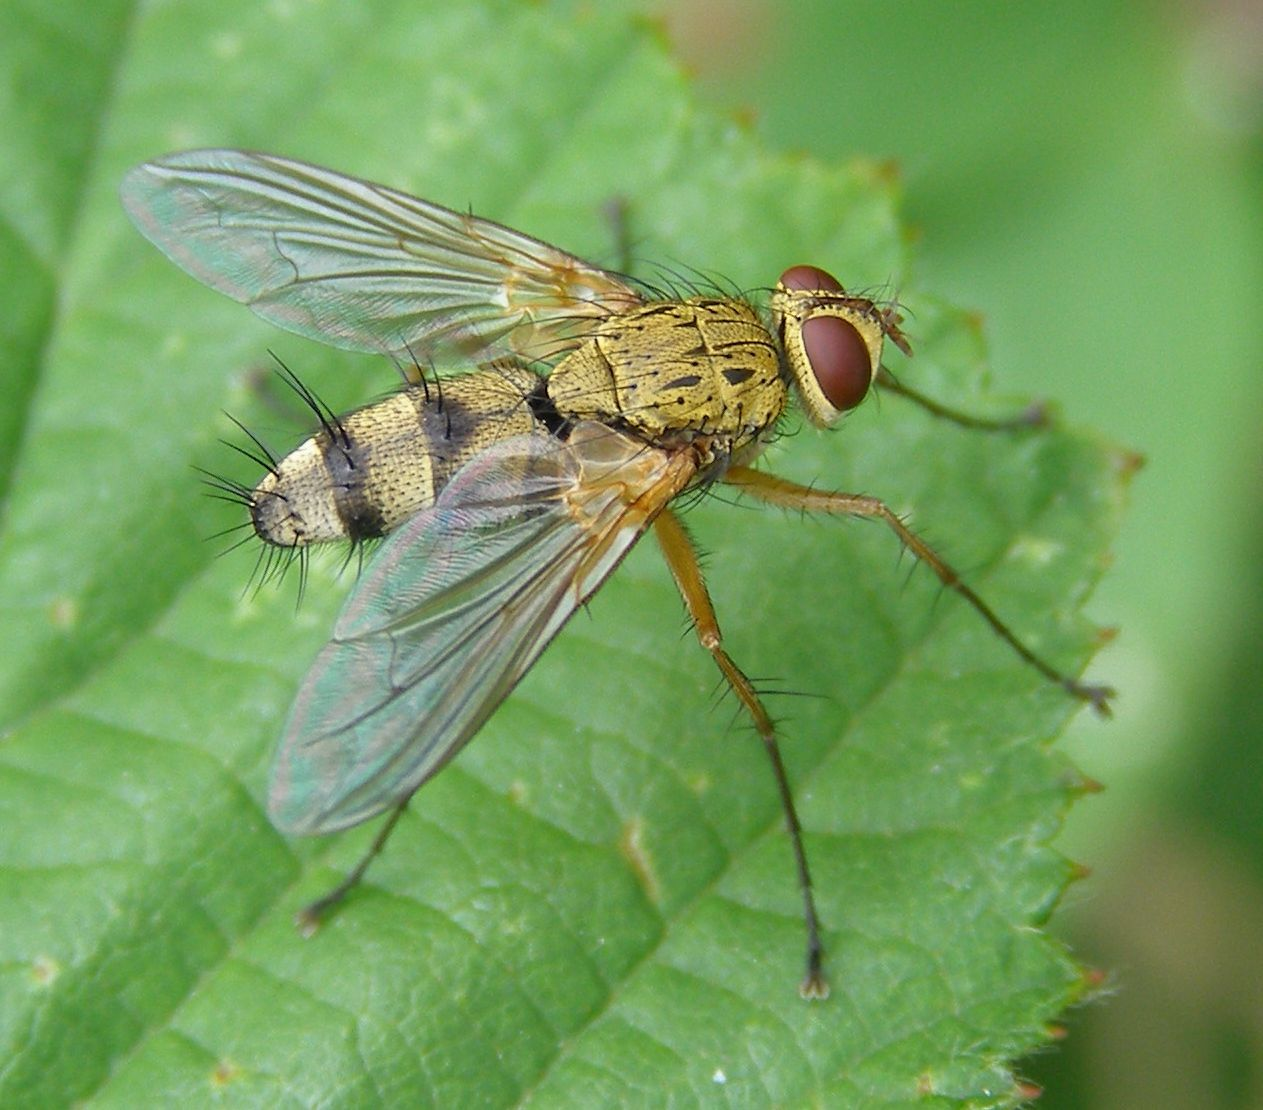 Tachinid Fly Small flies in house, Garden insects, Lawn